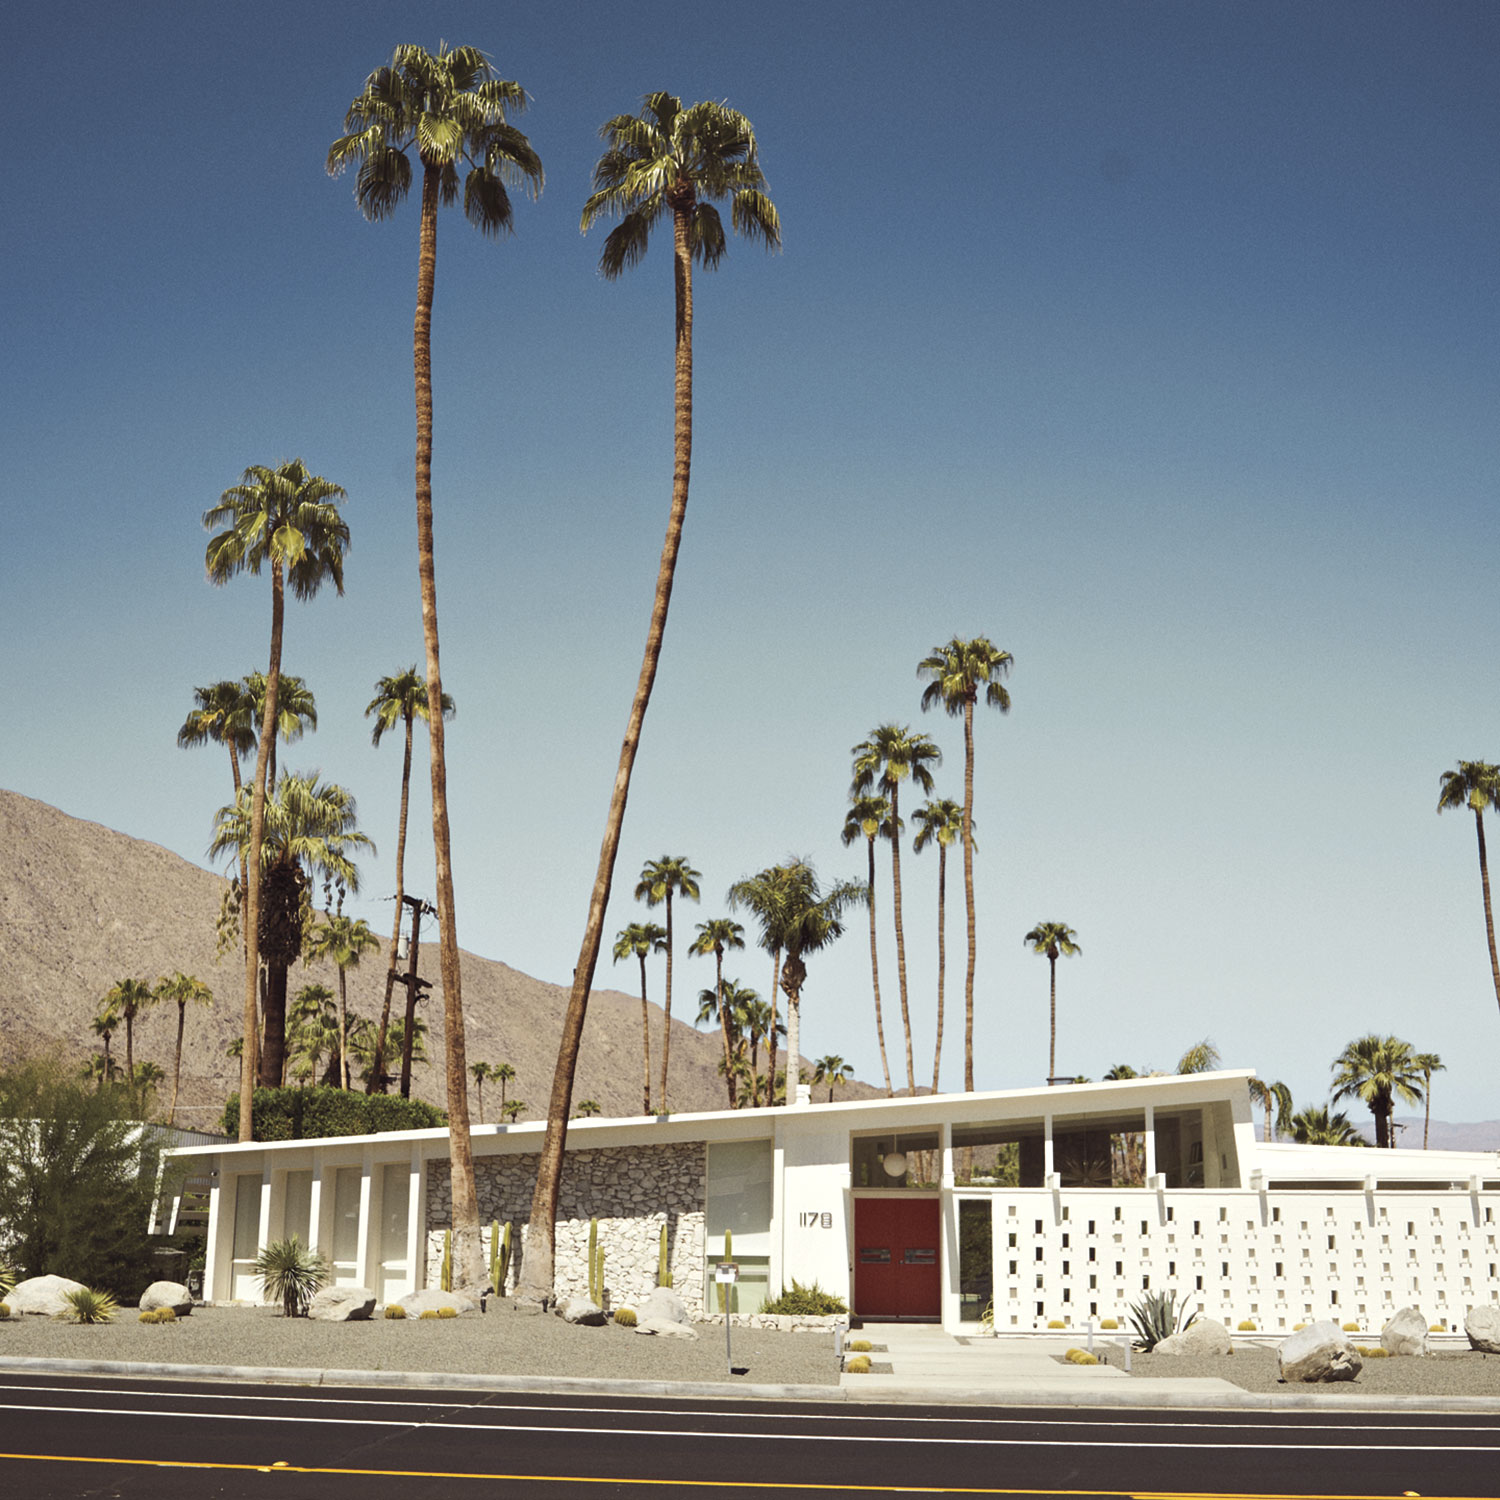 Architecture on Palm Springs Mod Squad tour; Photo Courtesy Adobe stock Images